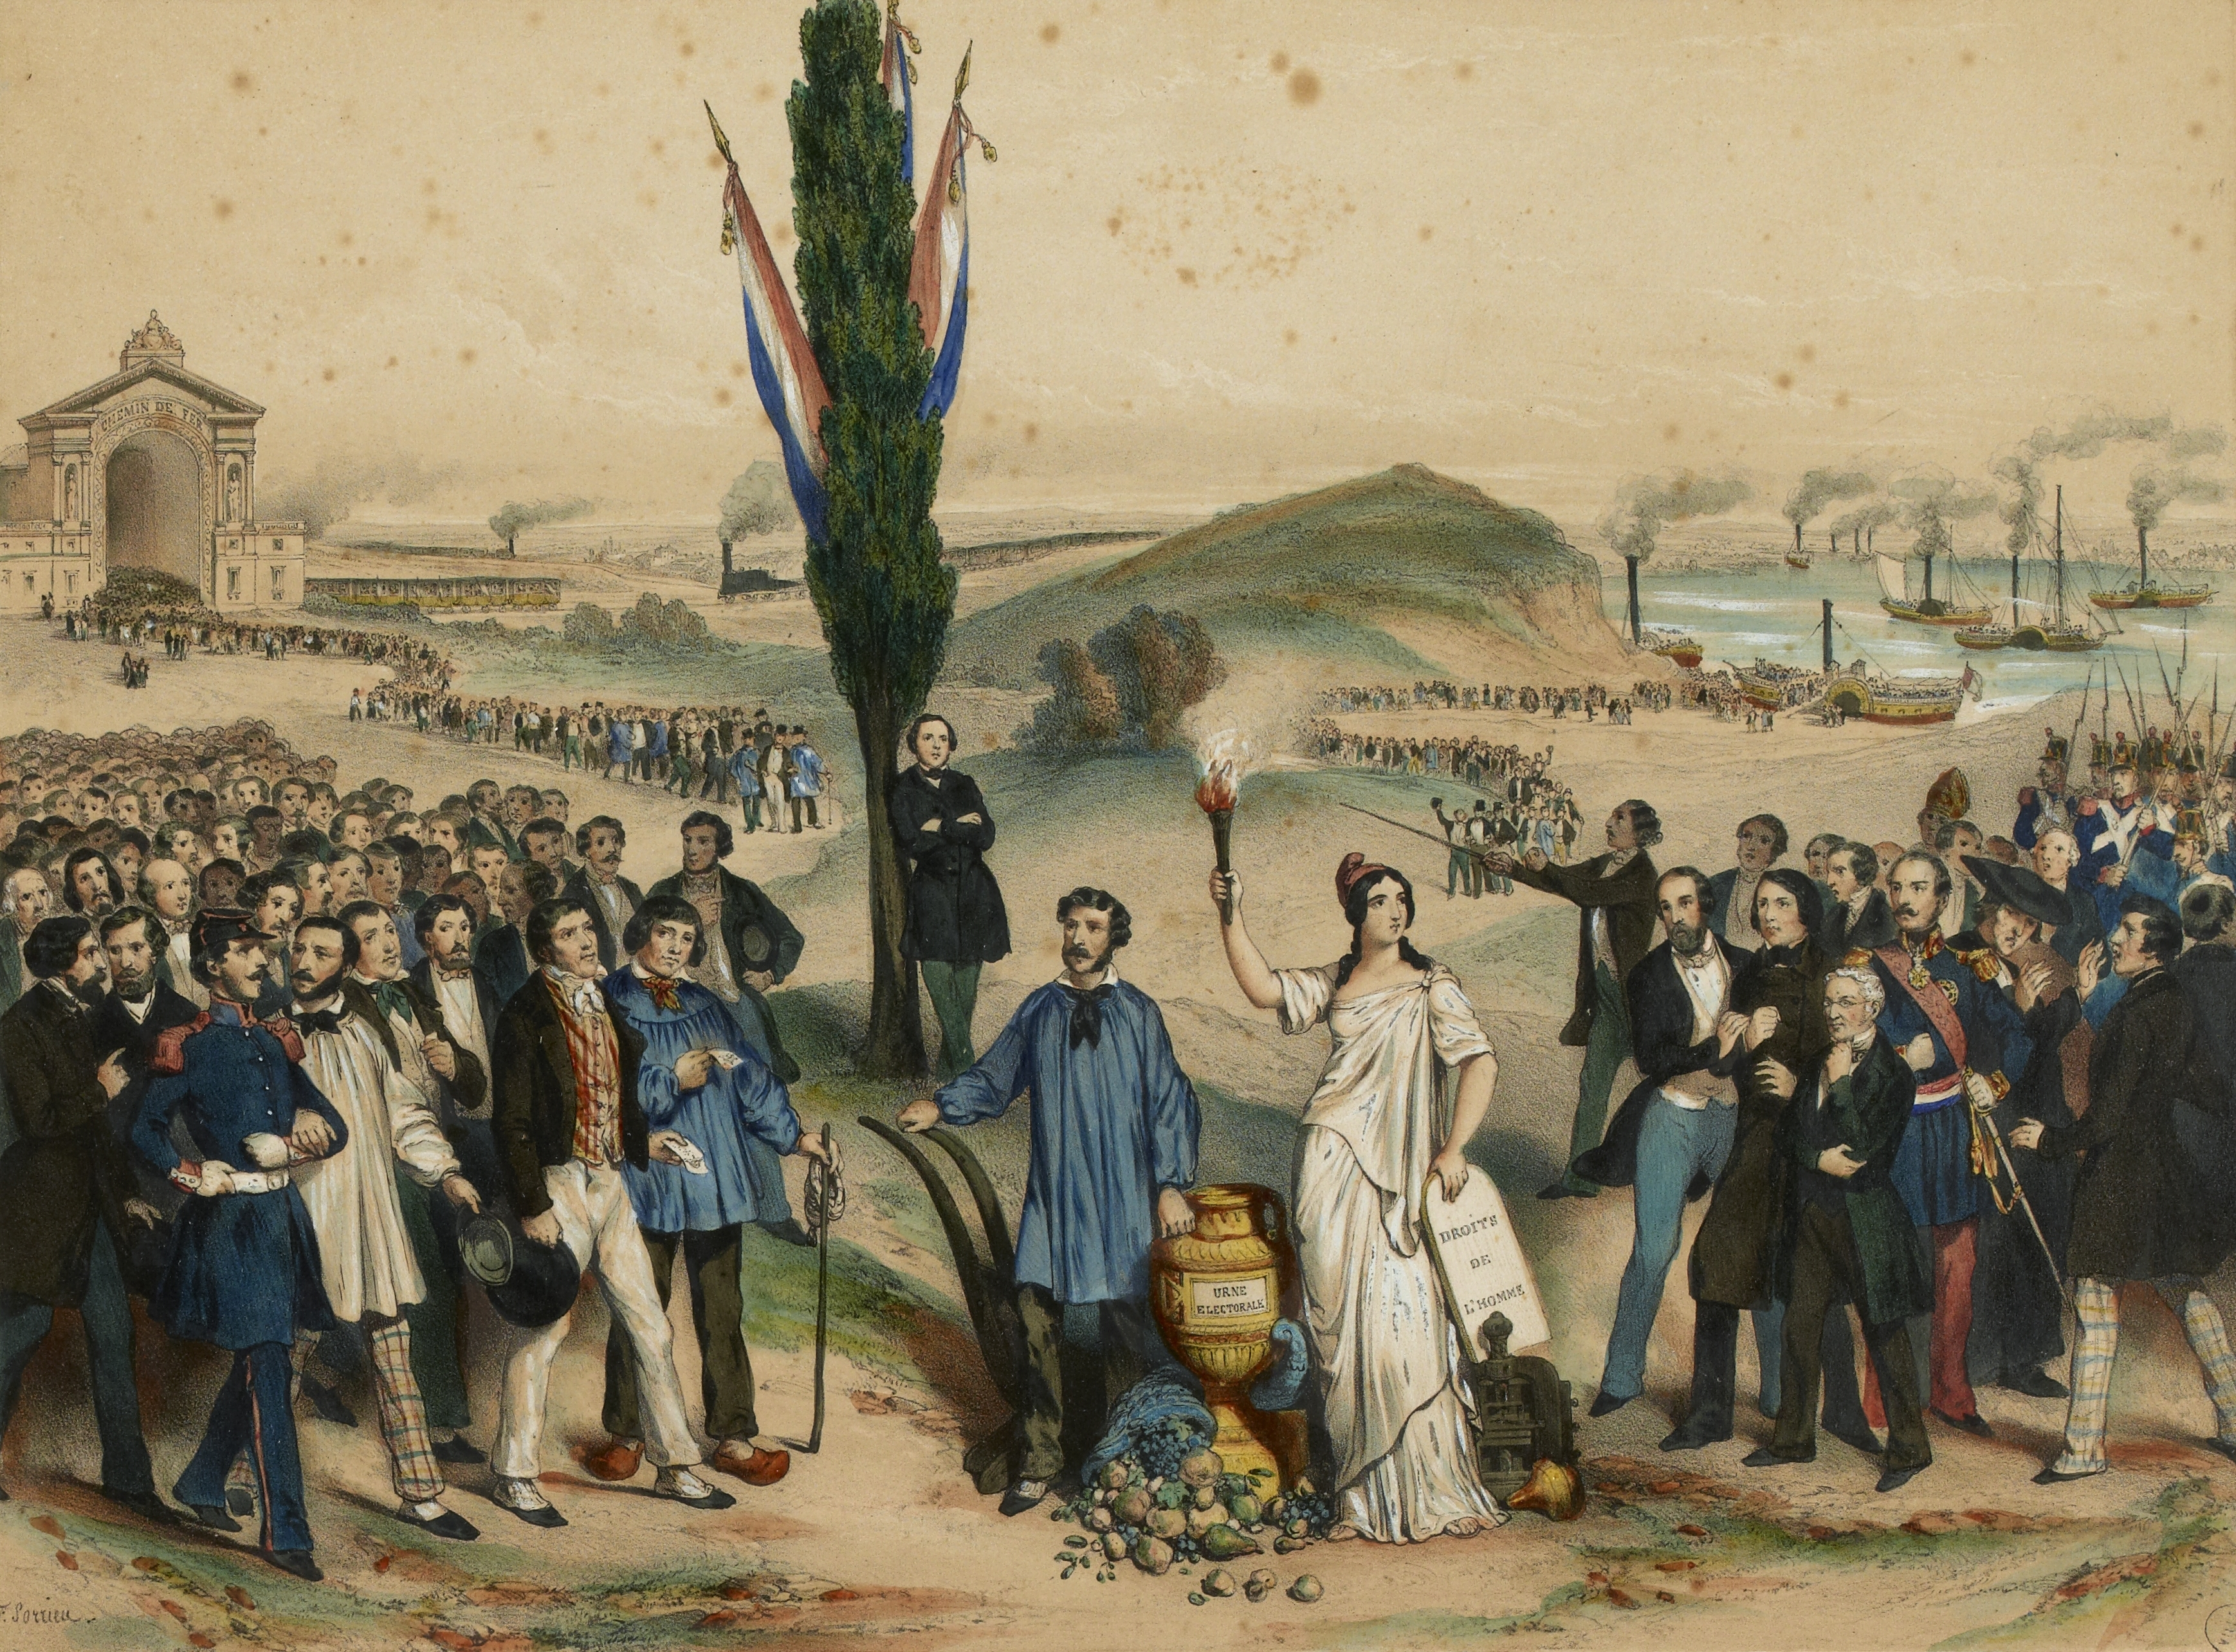 File:Suffrage universel 1848.jpg